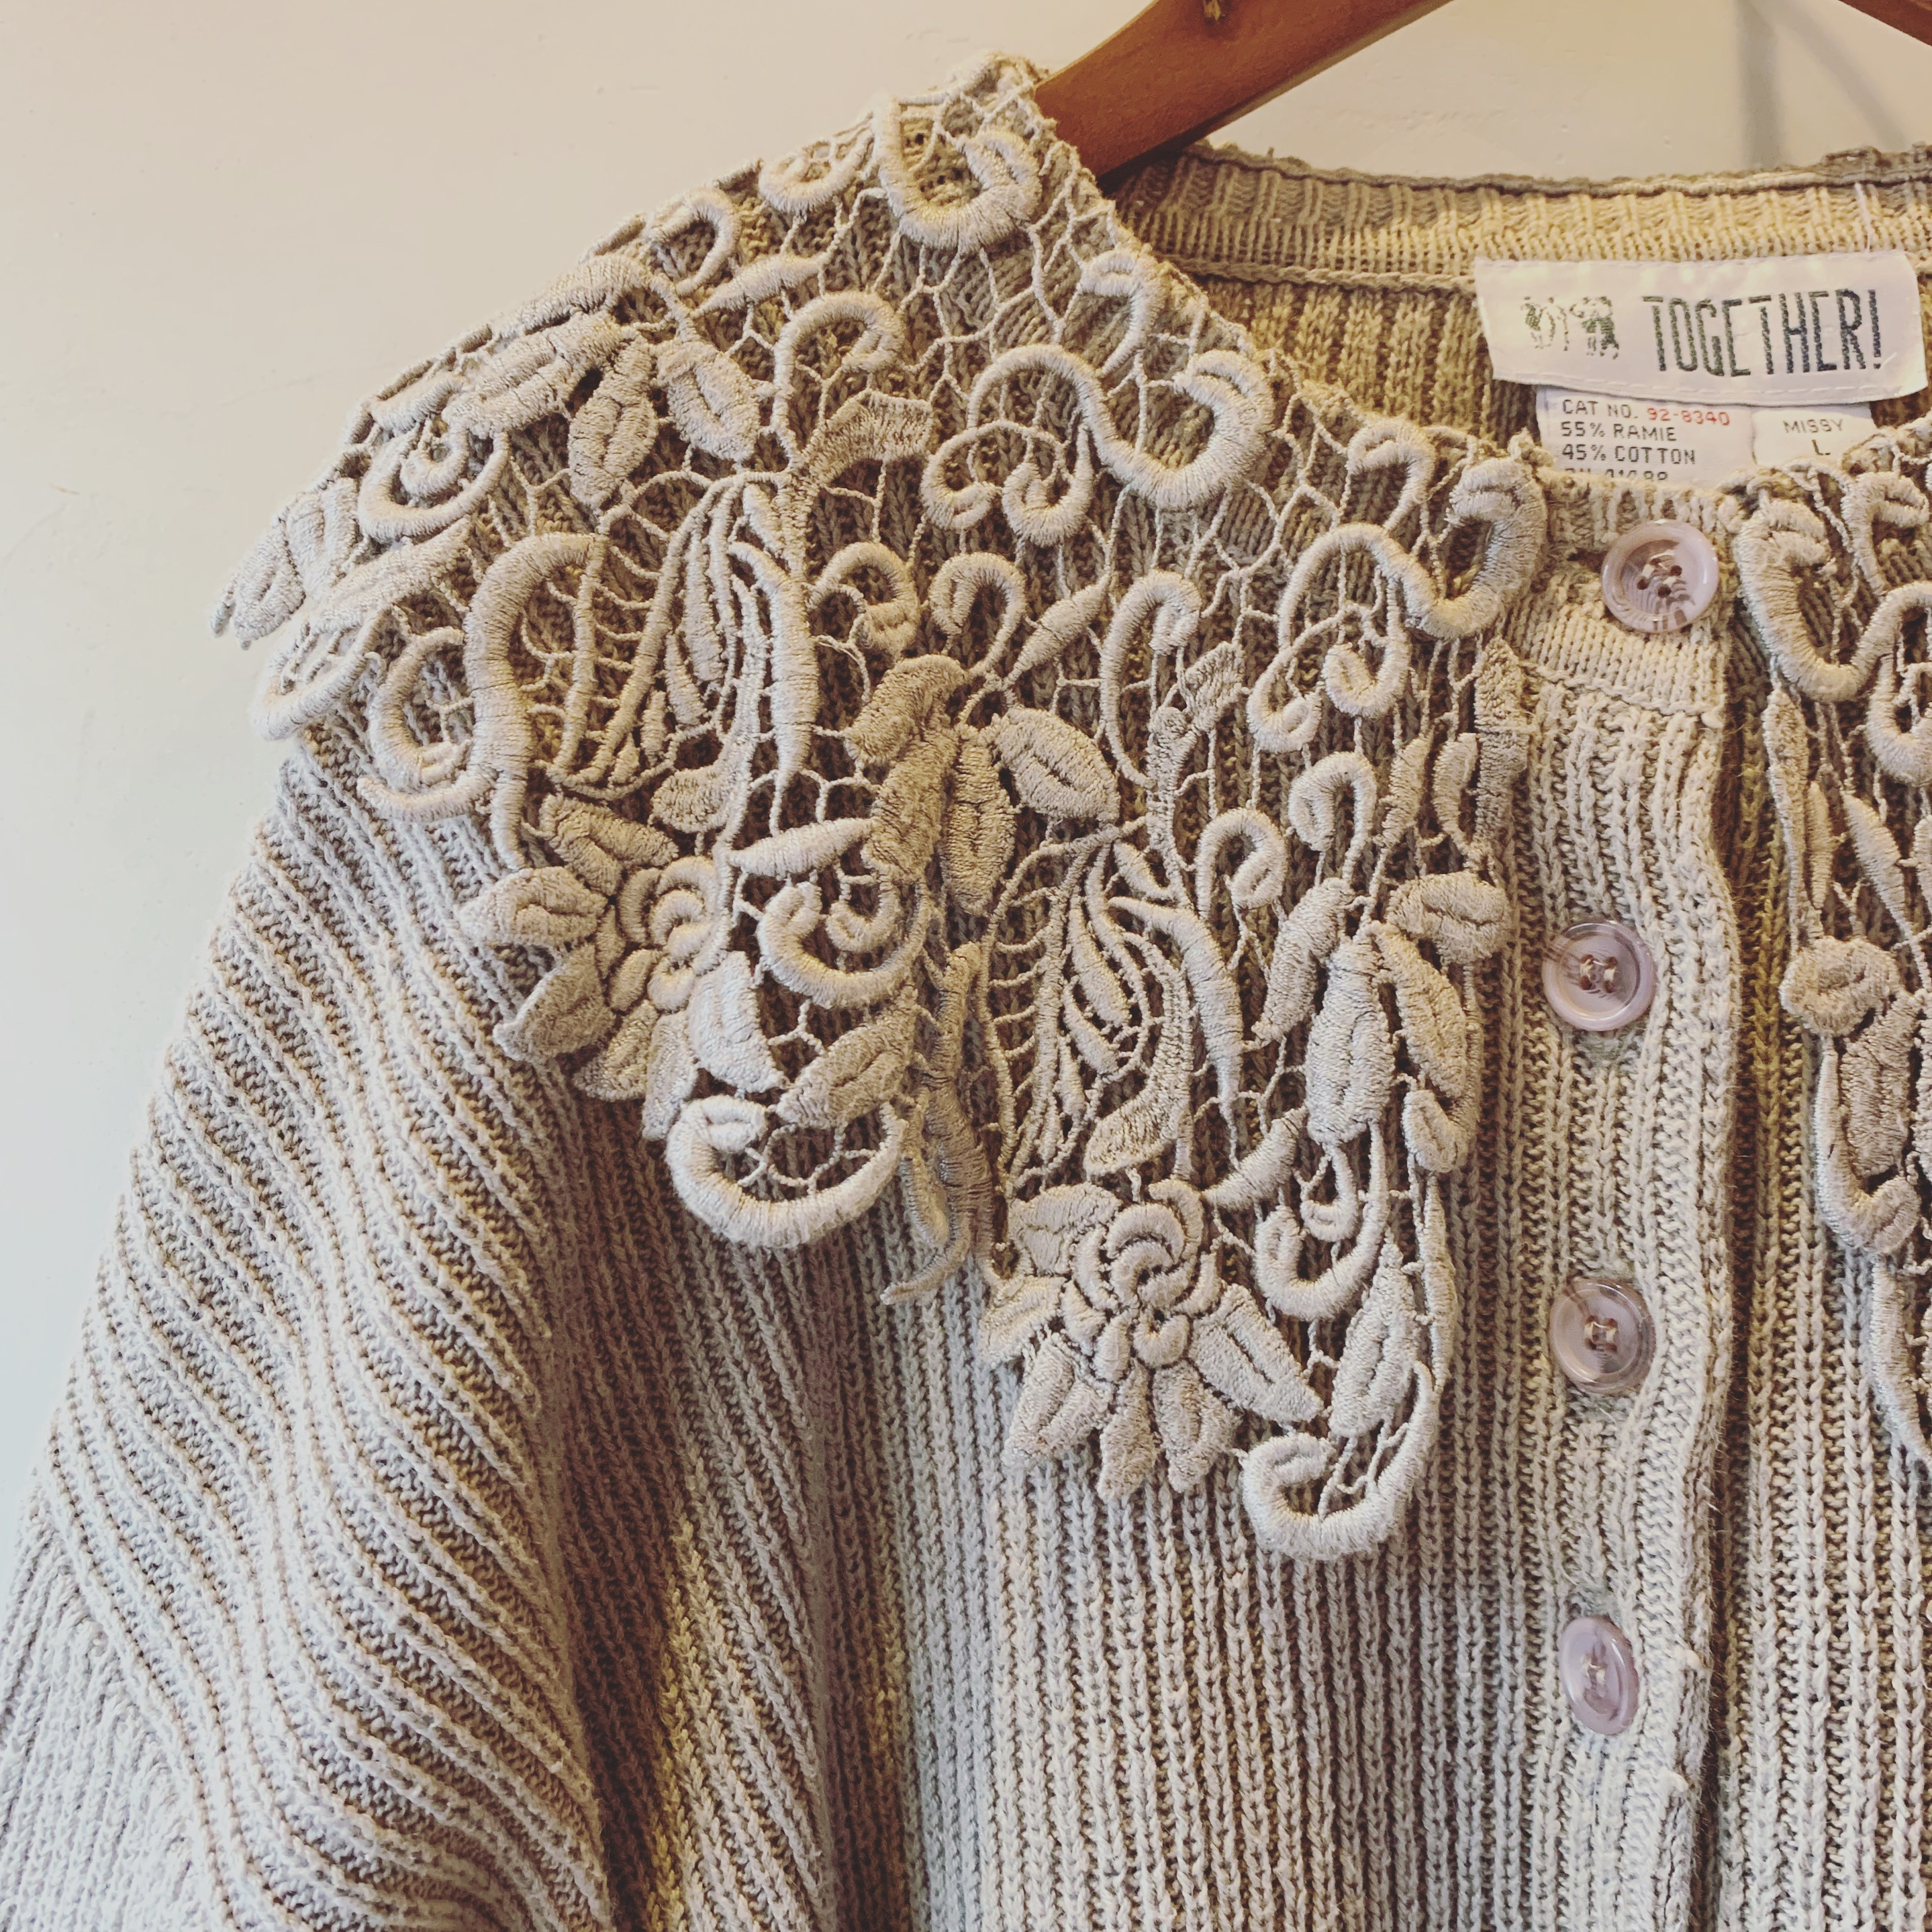 vintage lace design cotton knit sweater